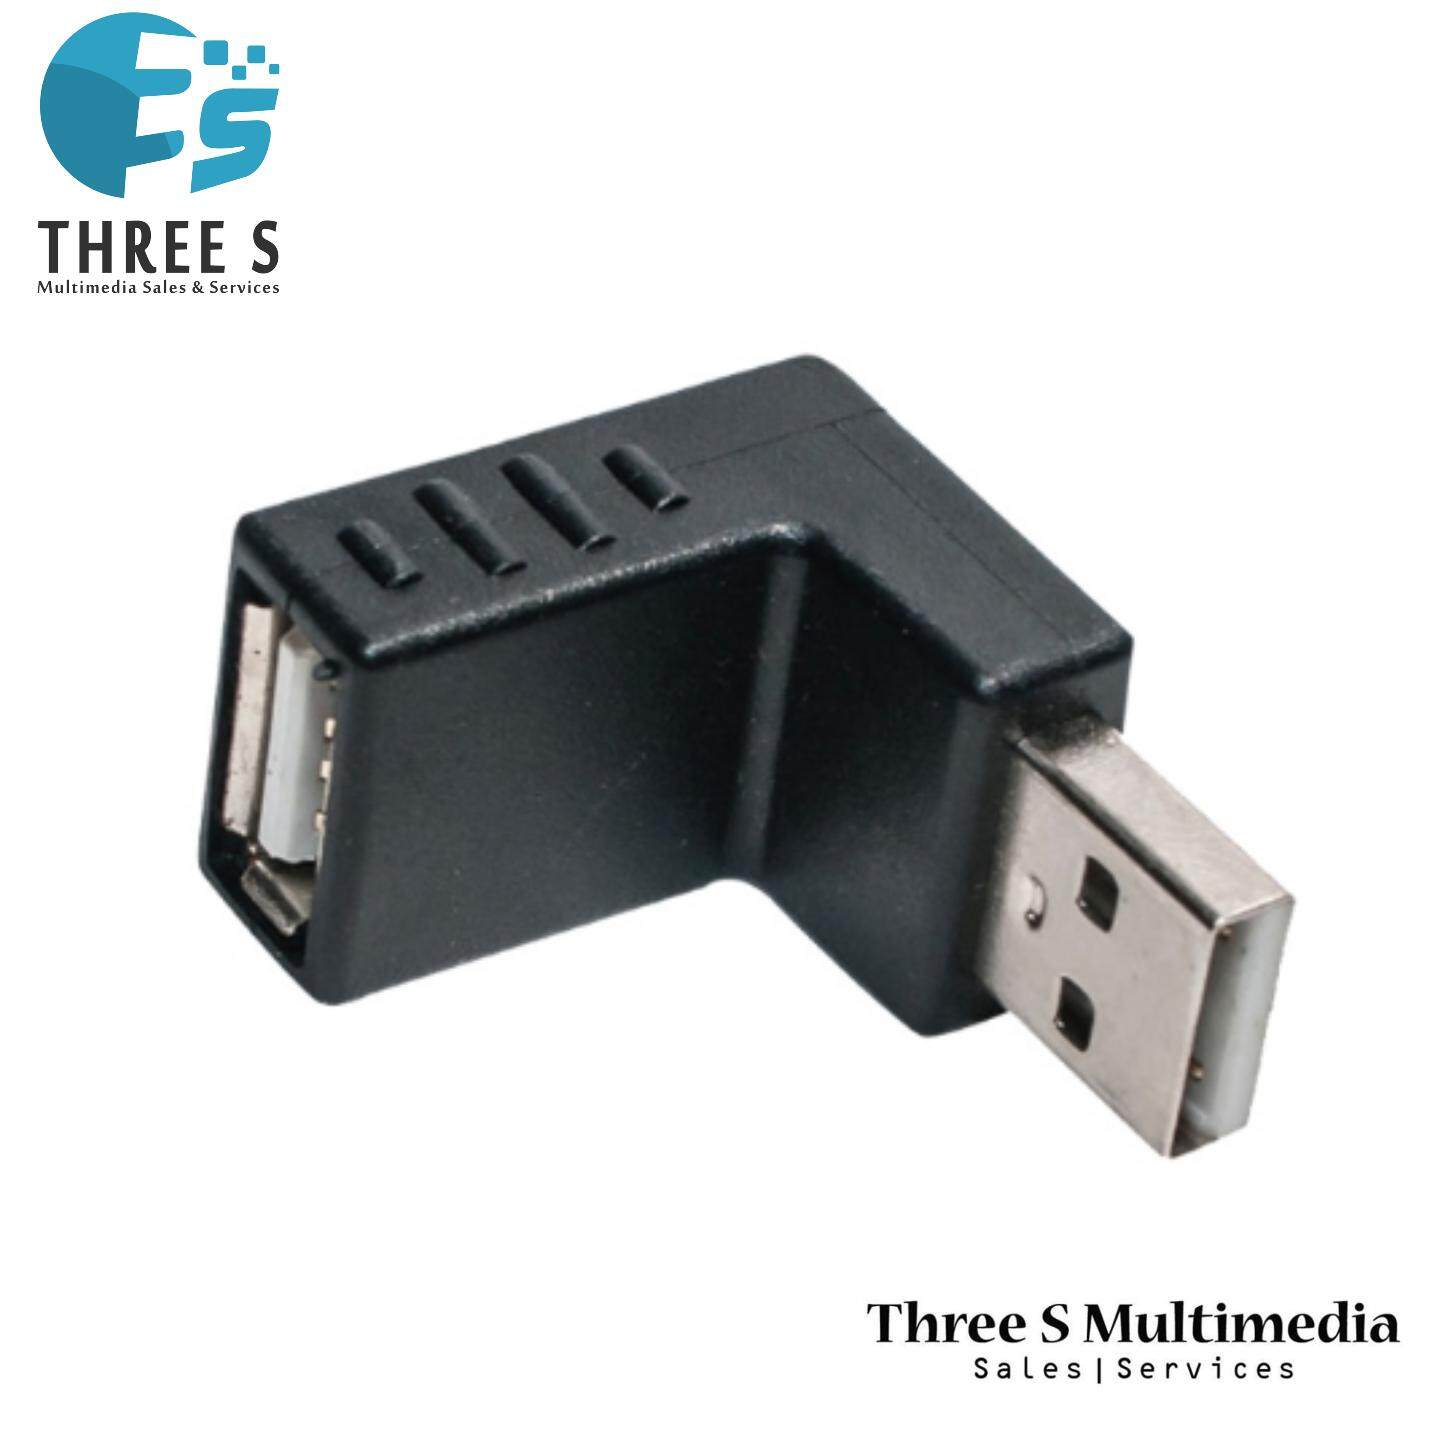 USB A FEMALE TO A MALE STANDARD RIGHT ANGLE ADAPTER M/F